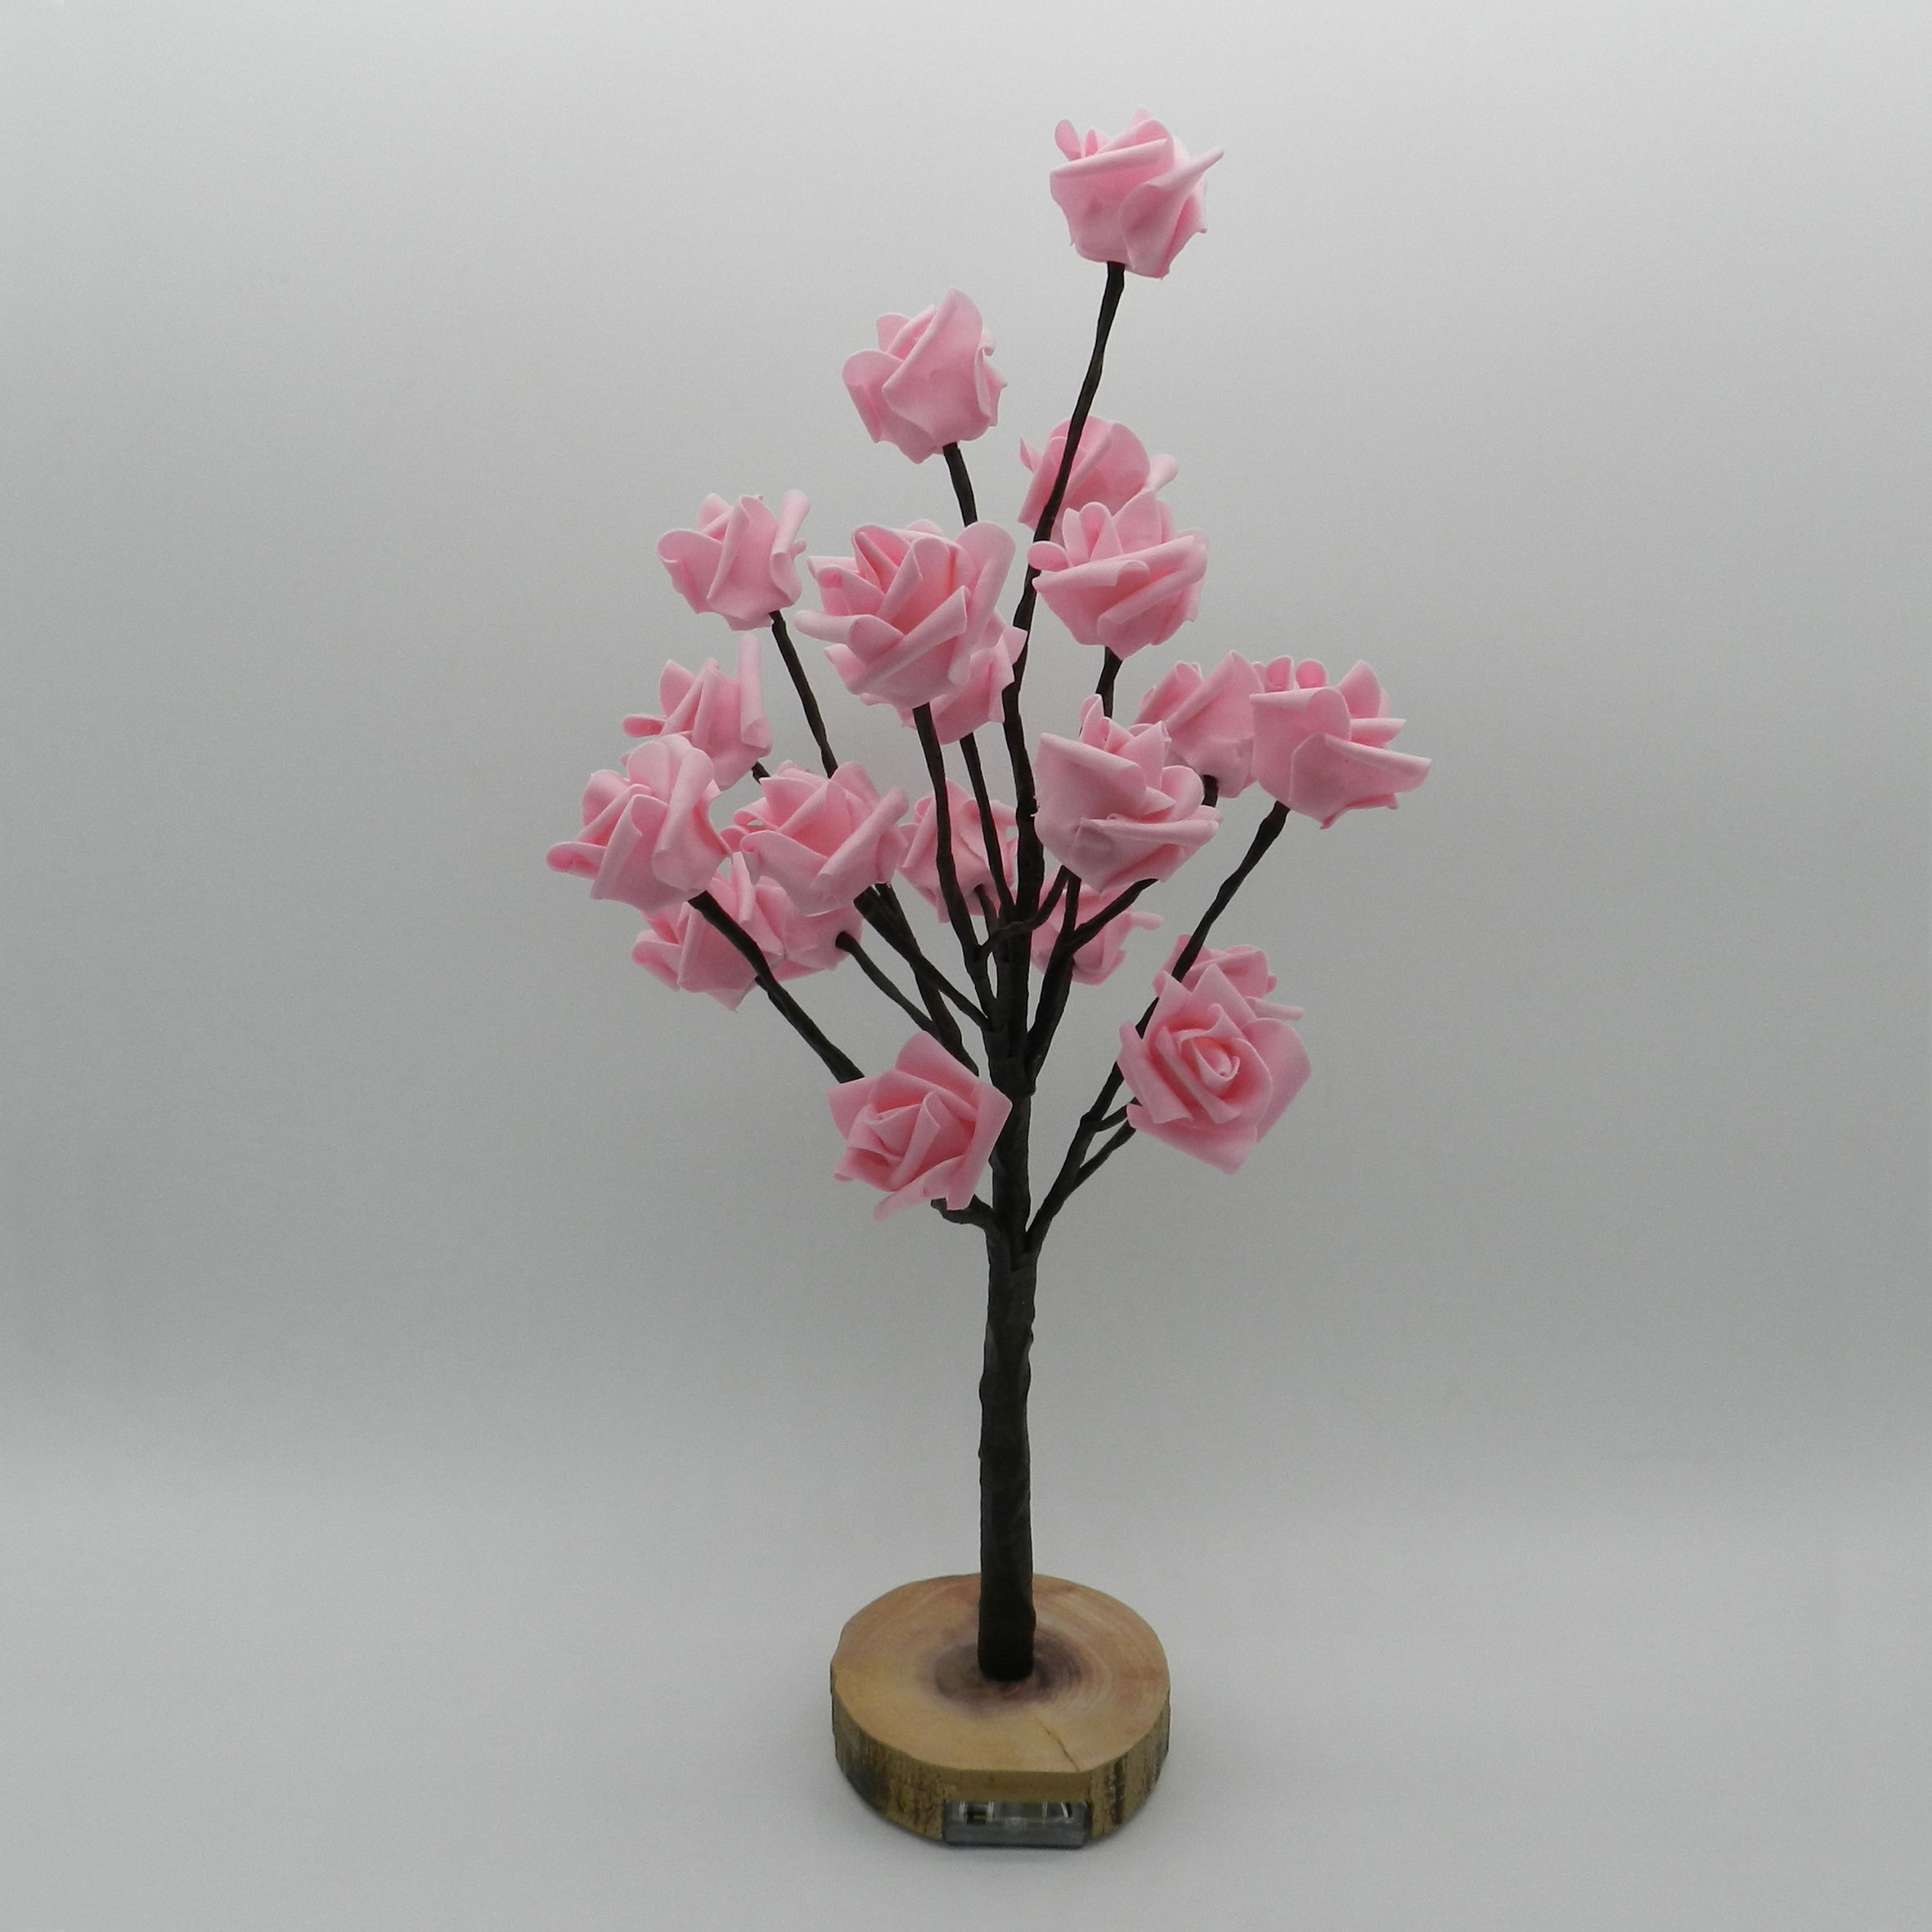 Battery Operated w/Timer Lighted Pink Rose Tree Tabletop LED Light, 20 Warm White LEDs, Rustic Vintage Wooden base